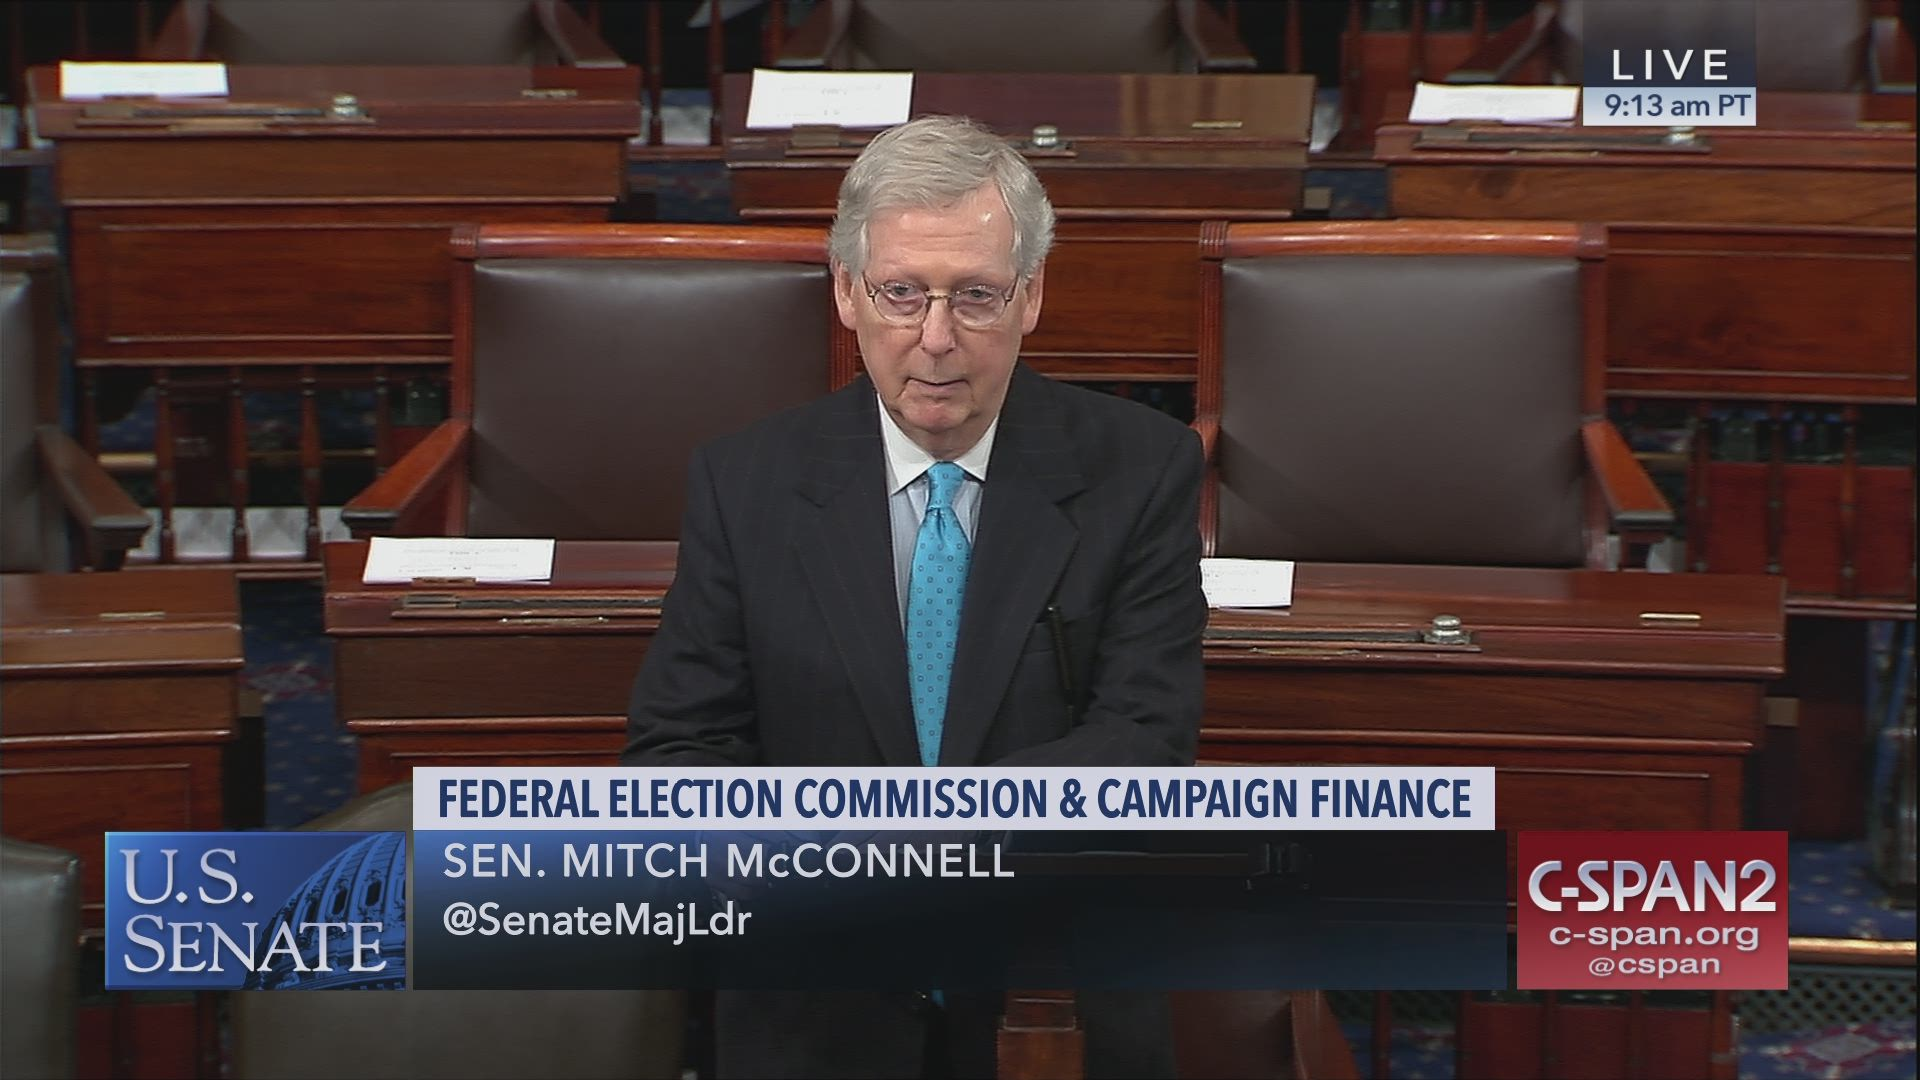 Senator Looks To Ease Burden For >> Sen Mitch Mcconnell Speaks About Hr1 C Span Org